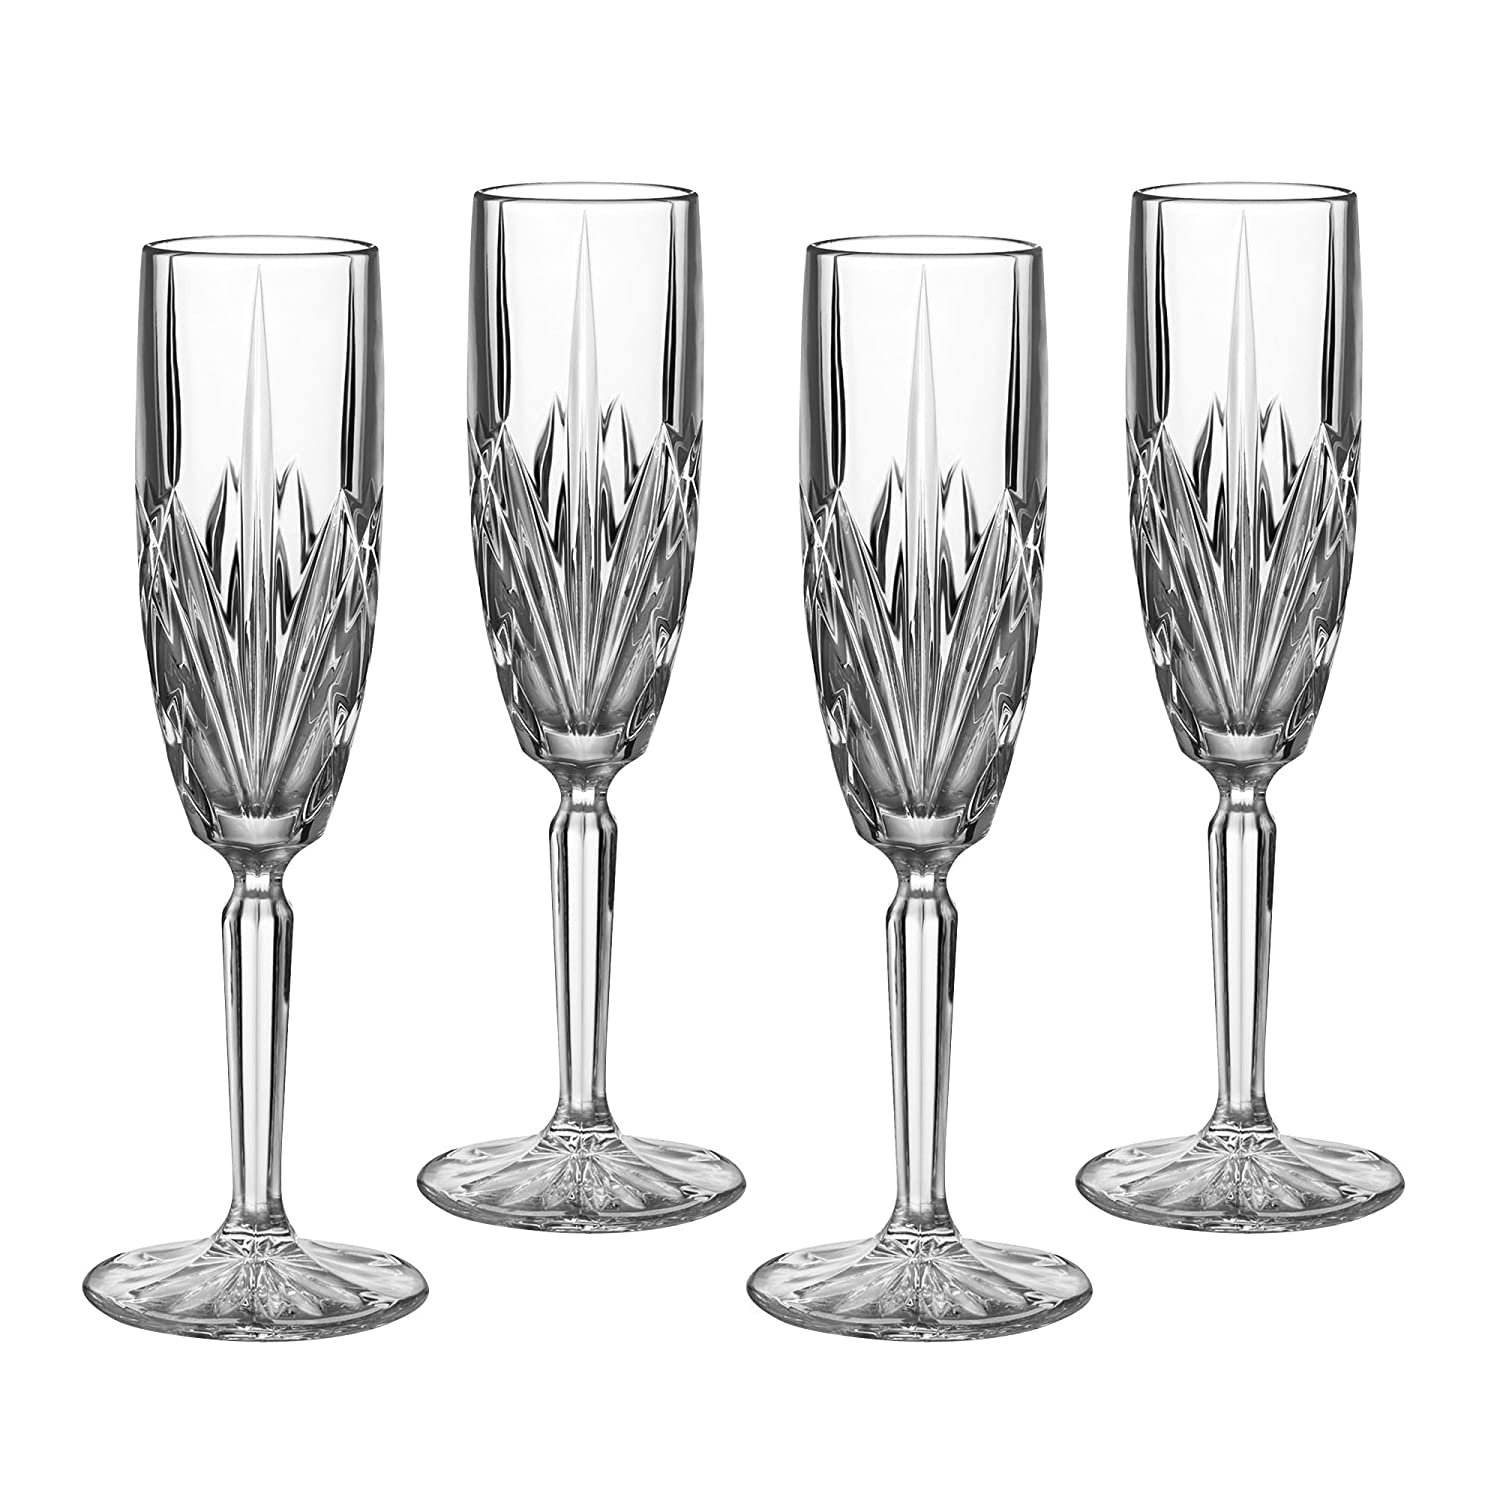 Amazon marquis by waterford brookside 12 ounce footed iced amazon marquis by waterford brookside 12 ounce footed iced beverage goblets set of 4 wine goblets champagne glasses reviewsmspy